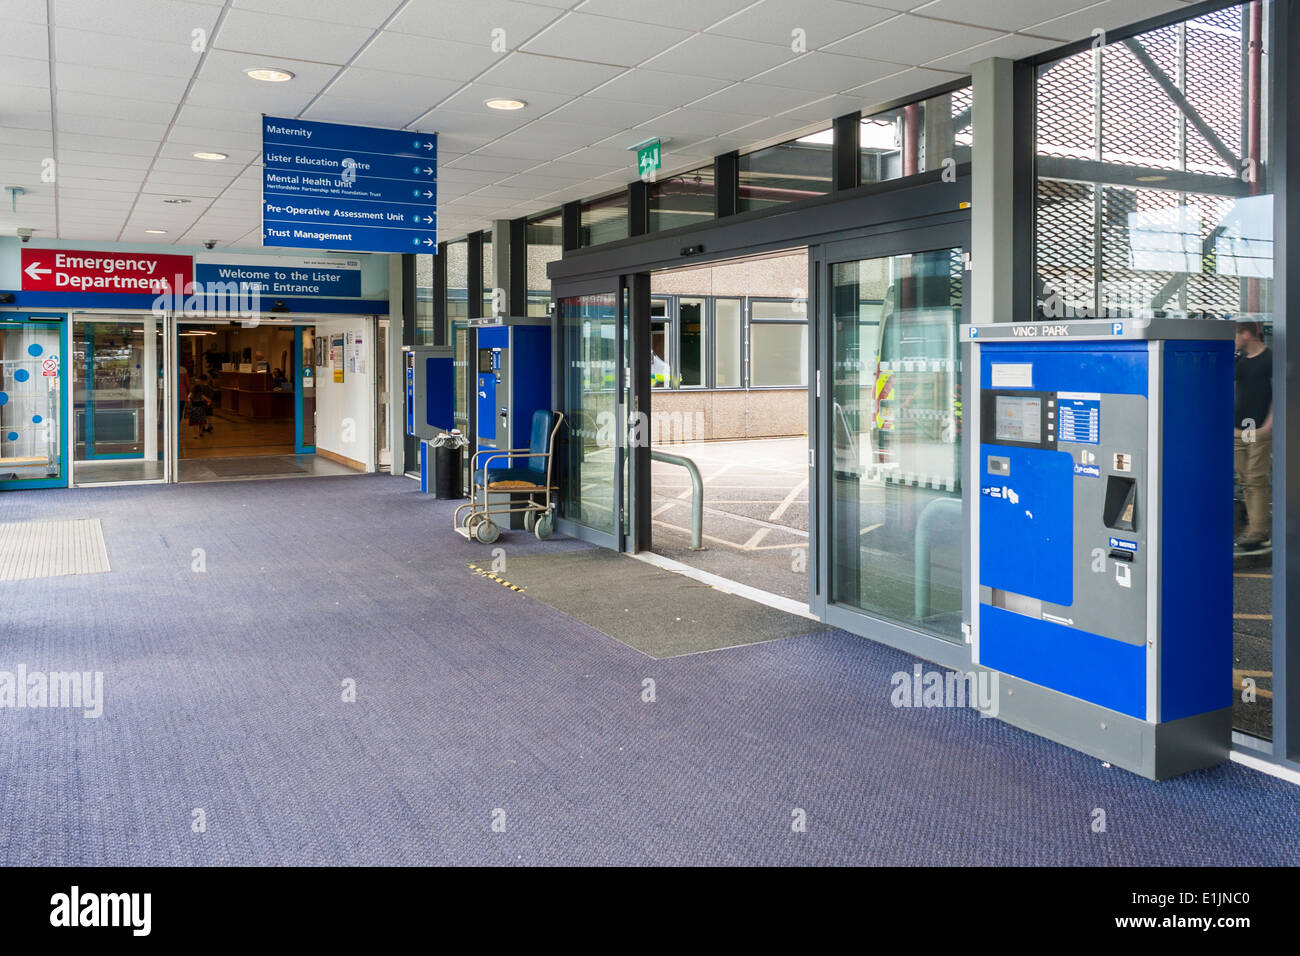 Interior entrance to Lister Hospital, Stevenage, Hertfordshire, England, GB, UK. - Stock Image